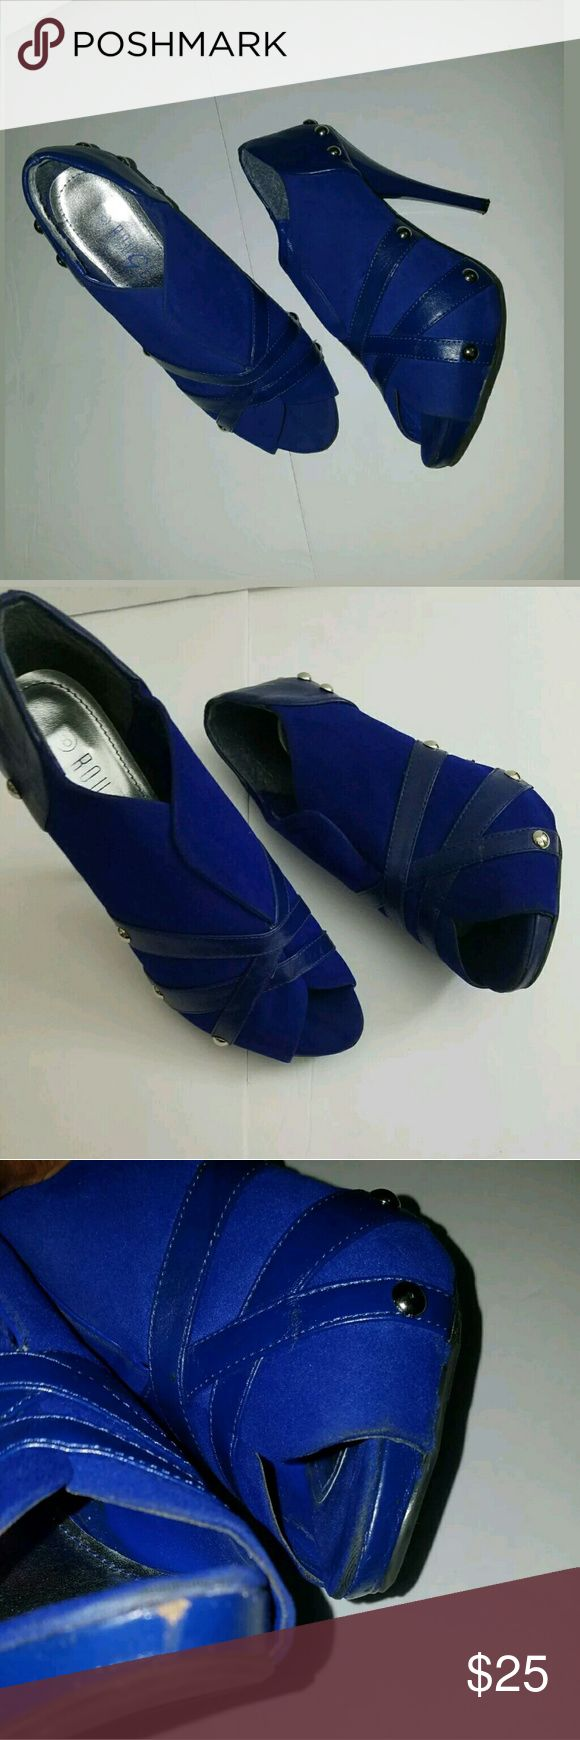 Royal Blue Studded Peep Toe Hidden Platform Heels Royal Blue Studded Peep Toe Hiddent Platform Stiletto Heels 8M  Very good used condition. Small scuff at toe.   1 inch platform. 4.75 inch heel.  LB rouge 66 Shoes Heels